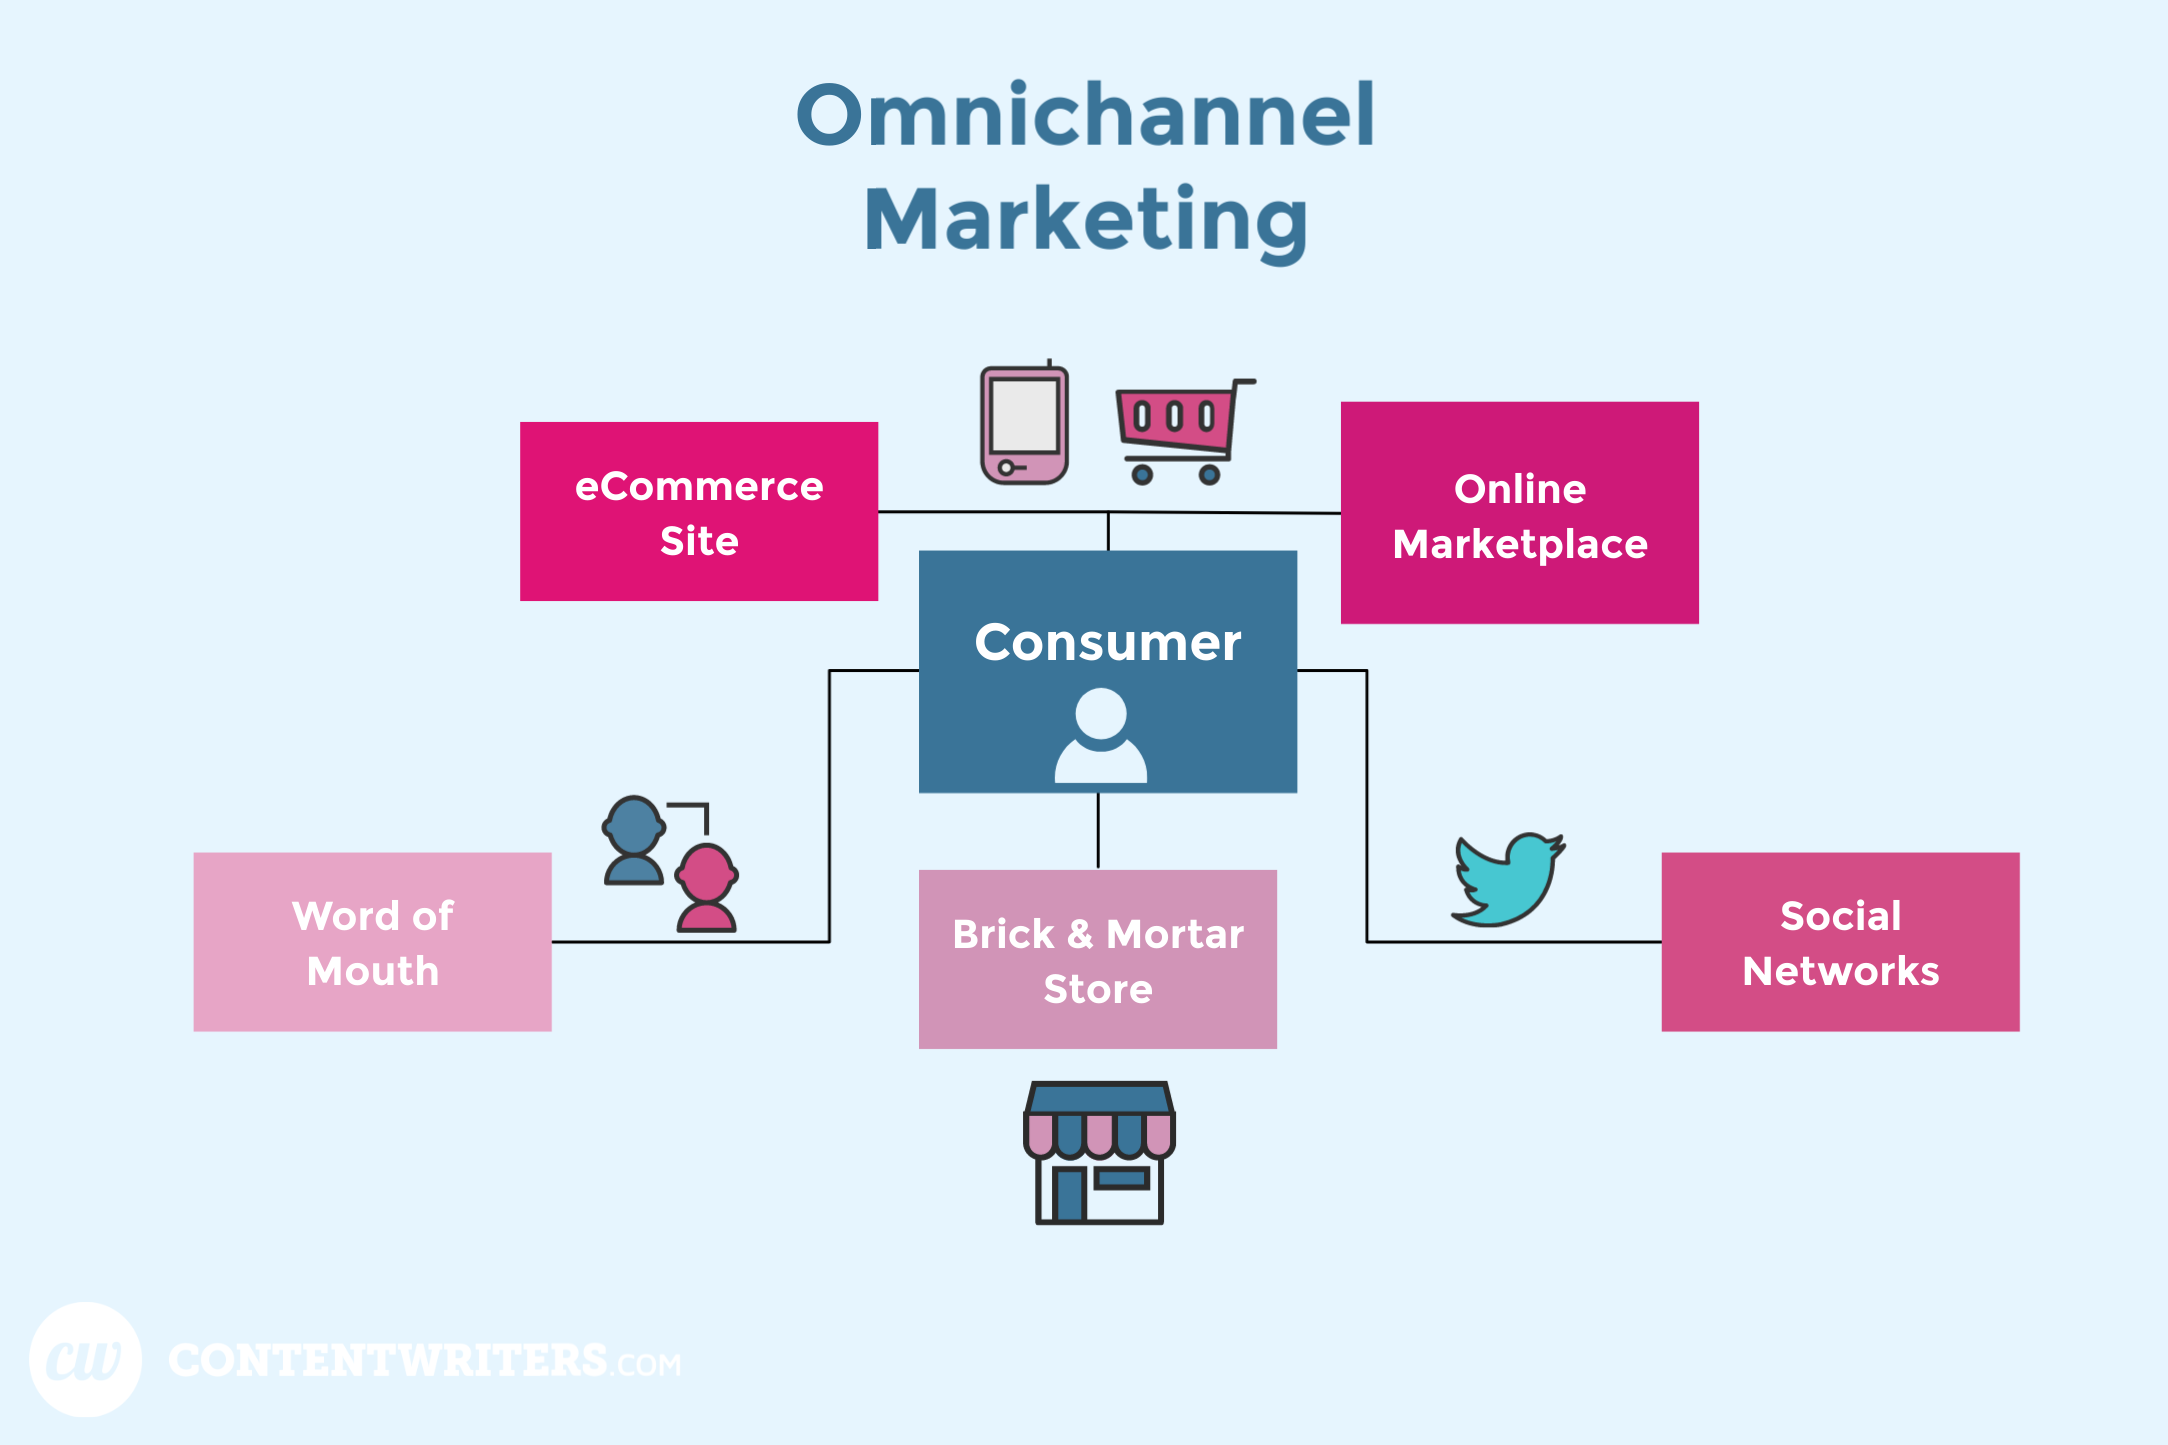 OmniChannel Marketing ContentWriters - different way of how you can reach your consumers